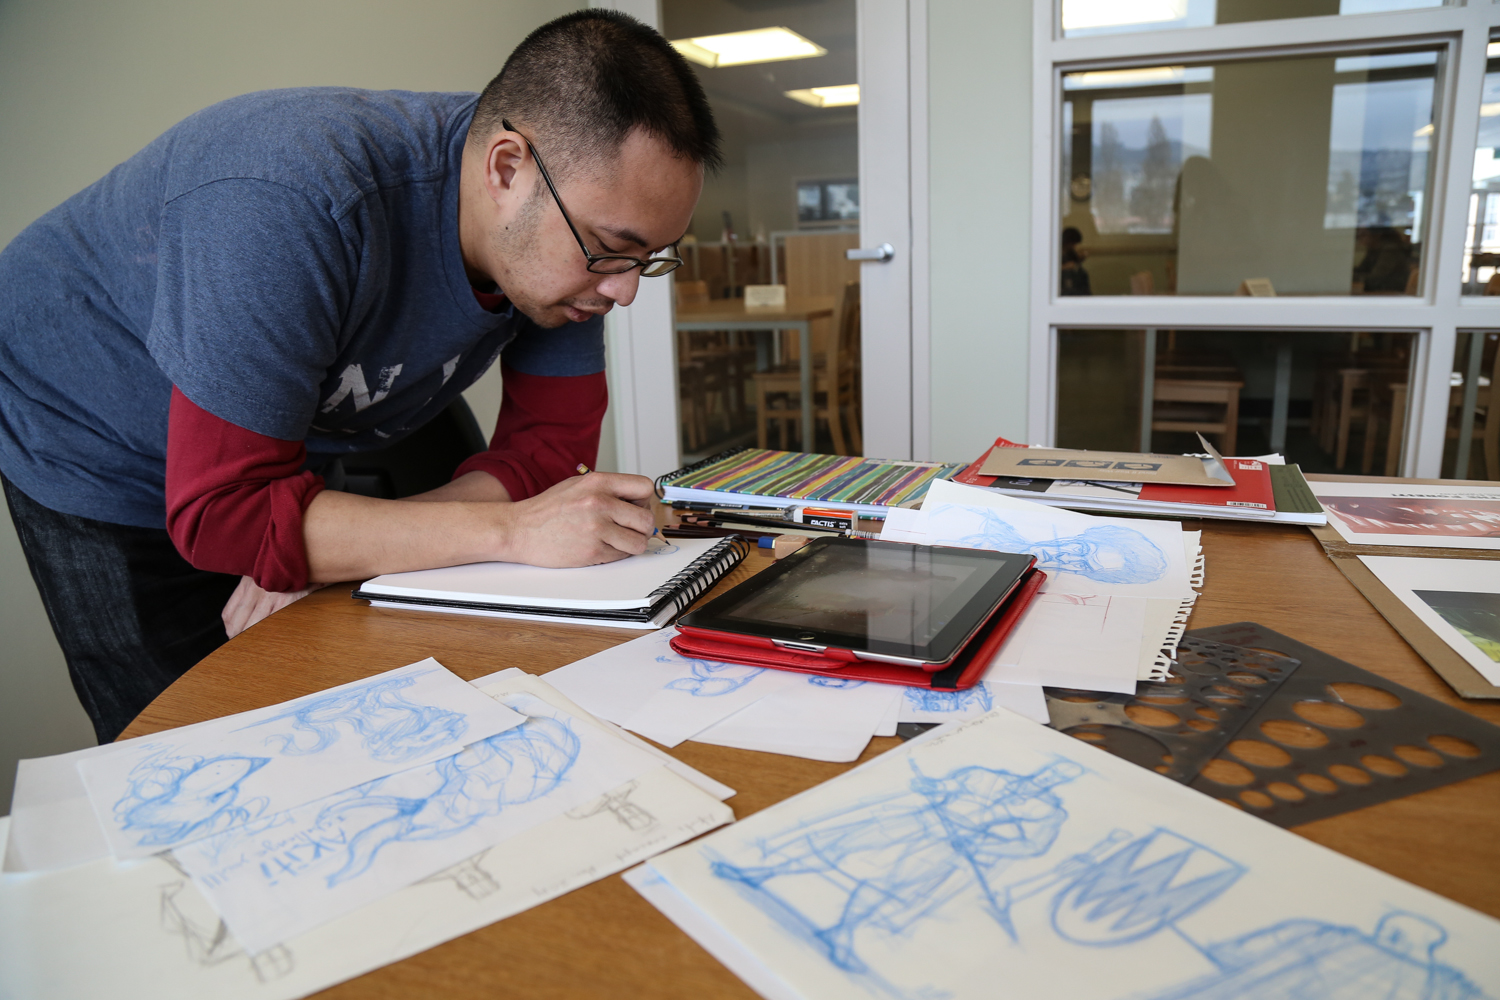 Illustrator Anthony Mata sketches original artwork at the City College Mission Center Library on Tuesday, March 10. (Photo by Natasha Dangond)